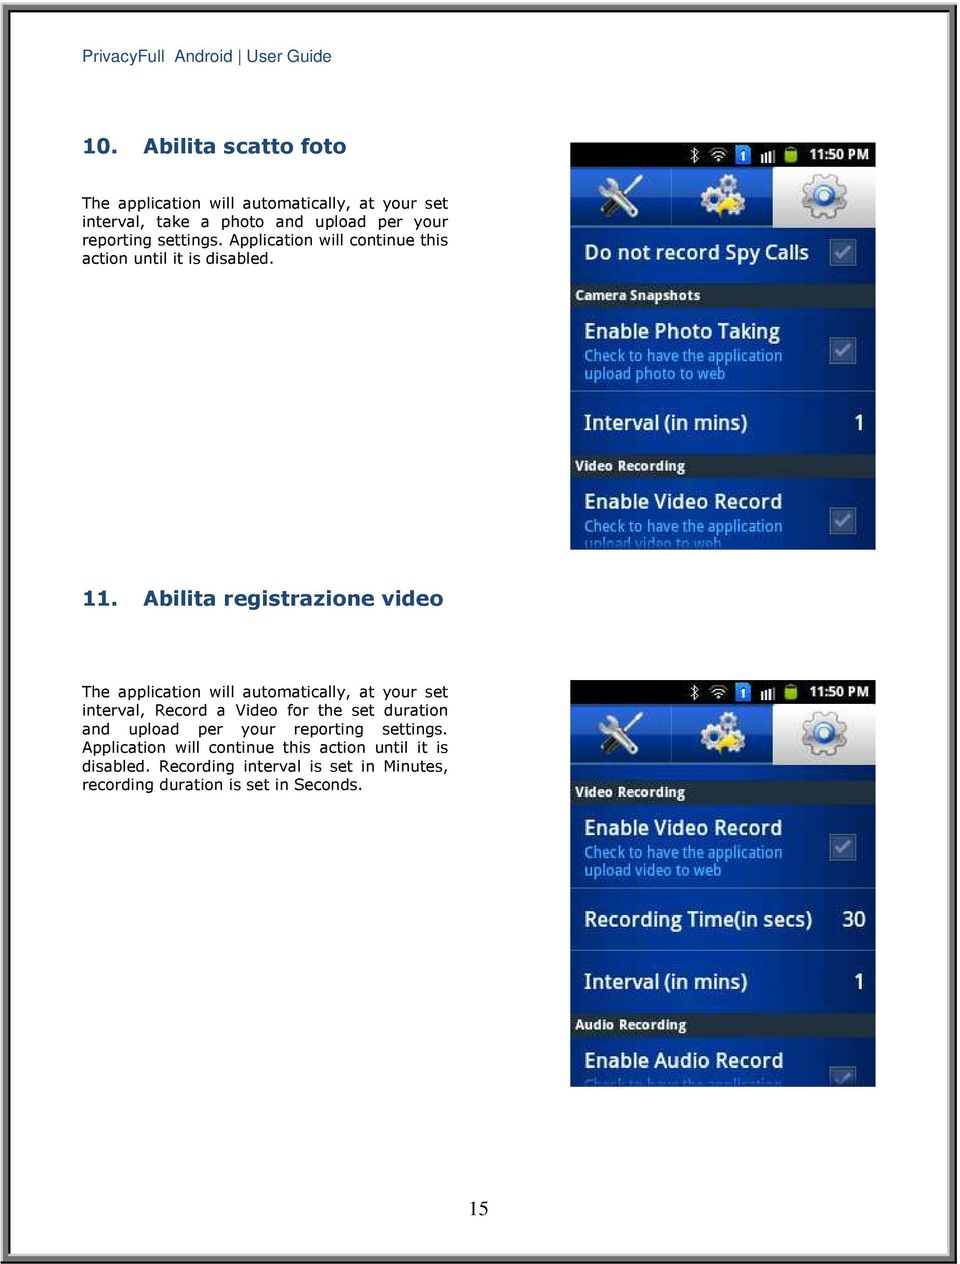 Abilita registrazione video The application will automatically, at your set interval, Record a Video for the set duration